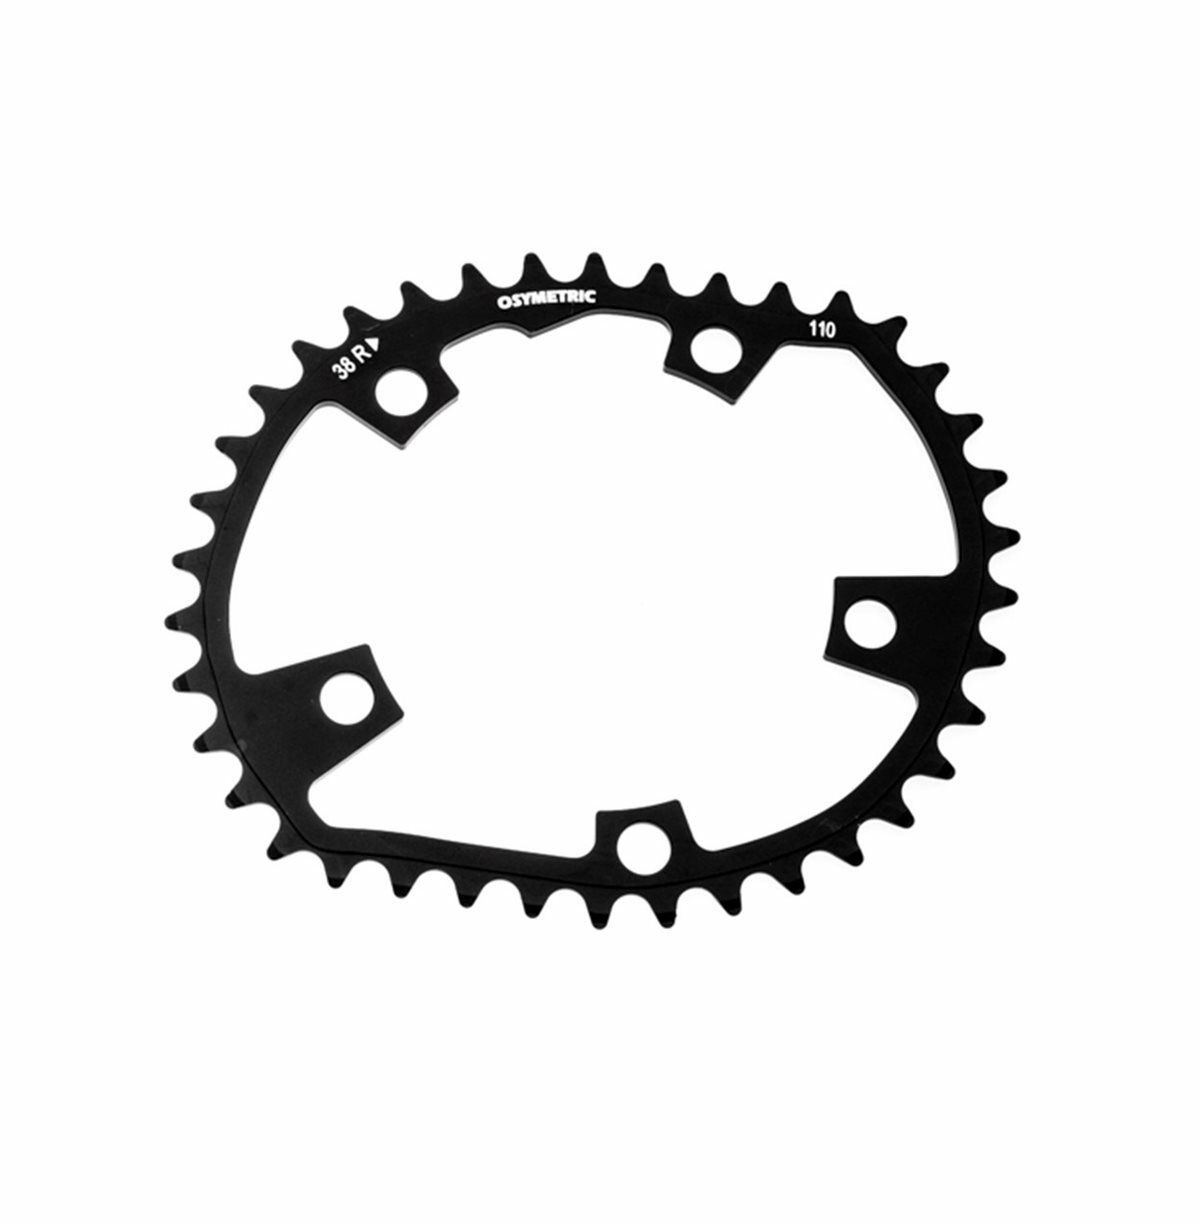 Plato osymetric 38T x 110mm STRONGLIGHT crankset